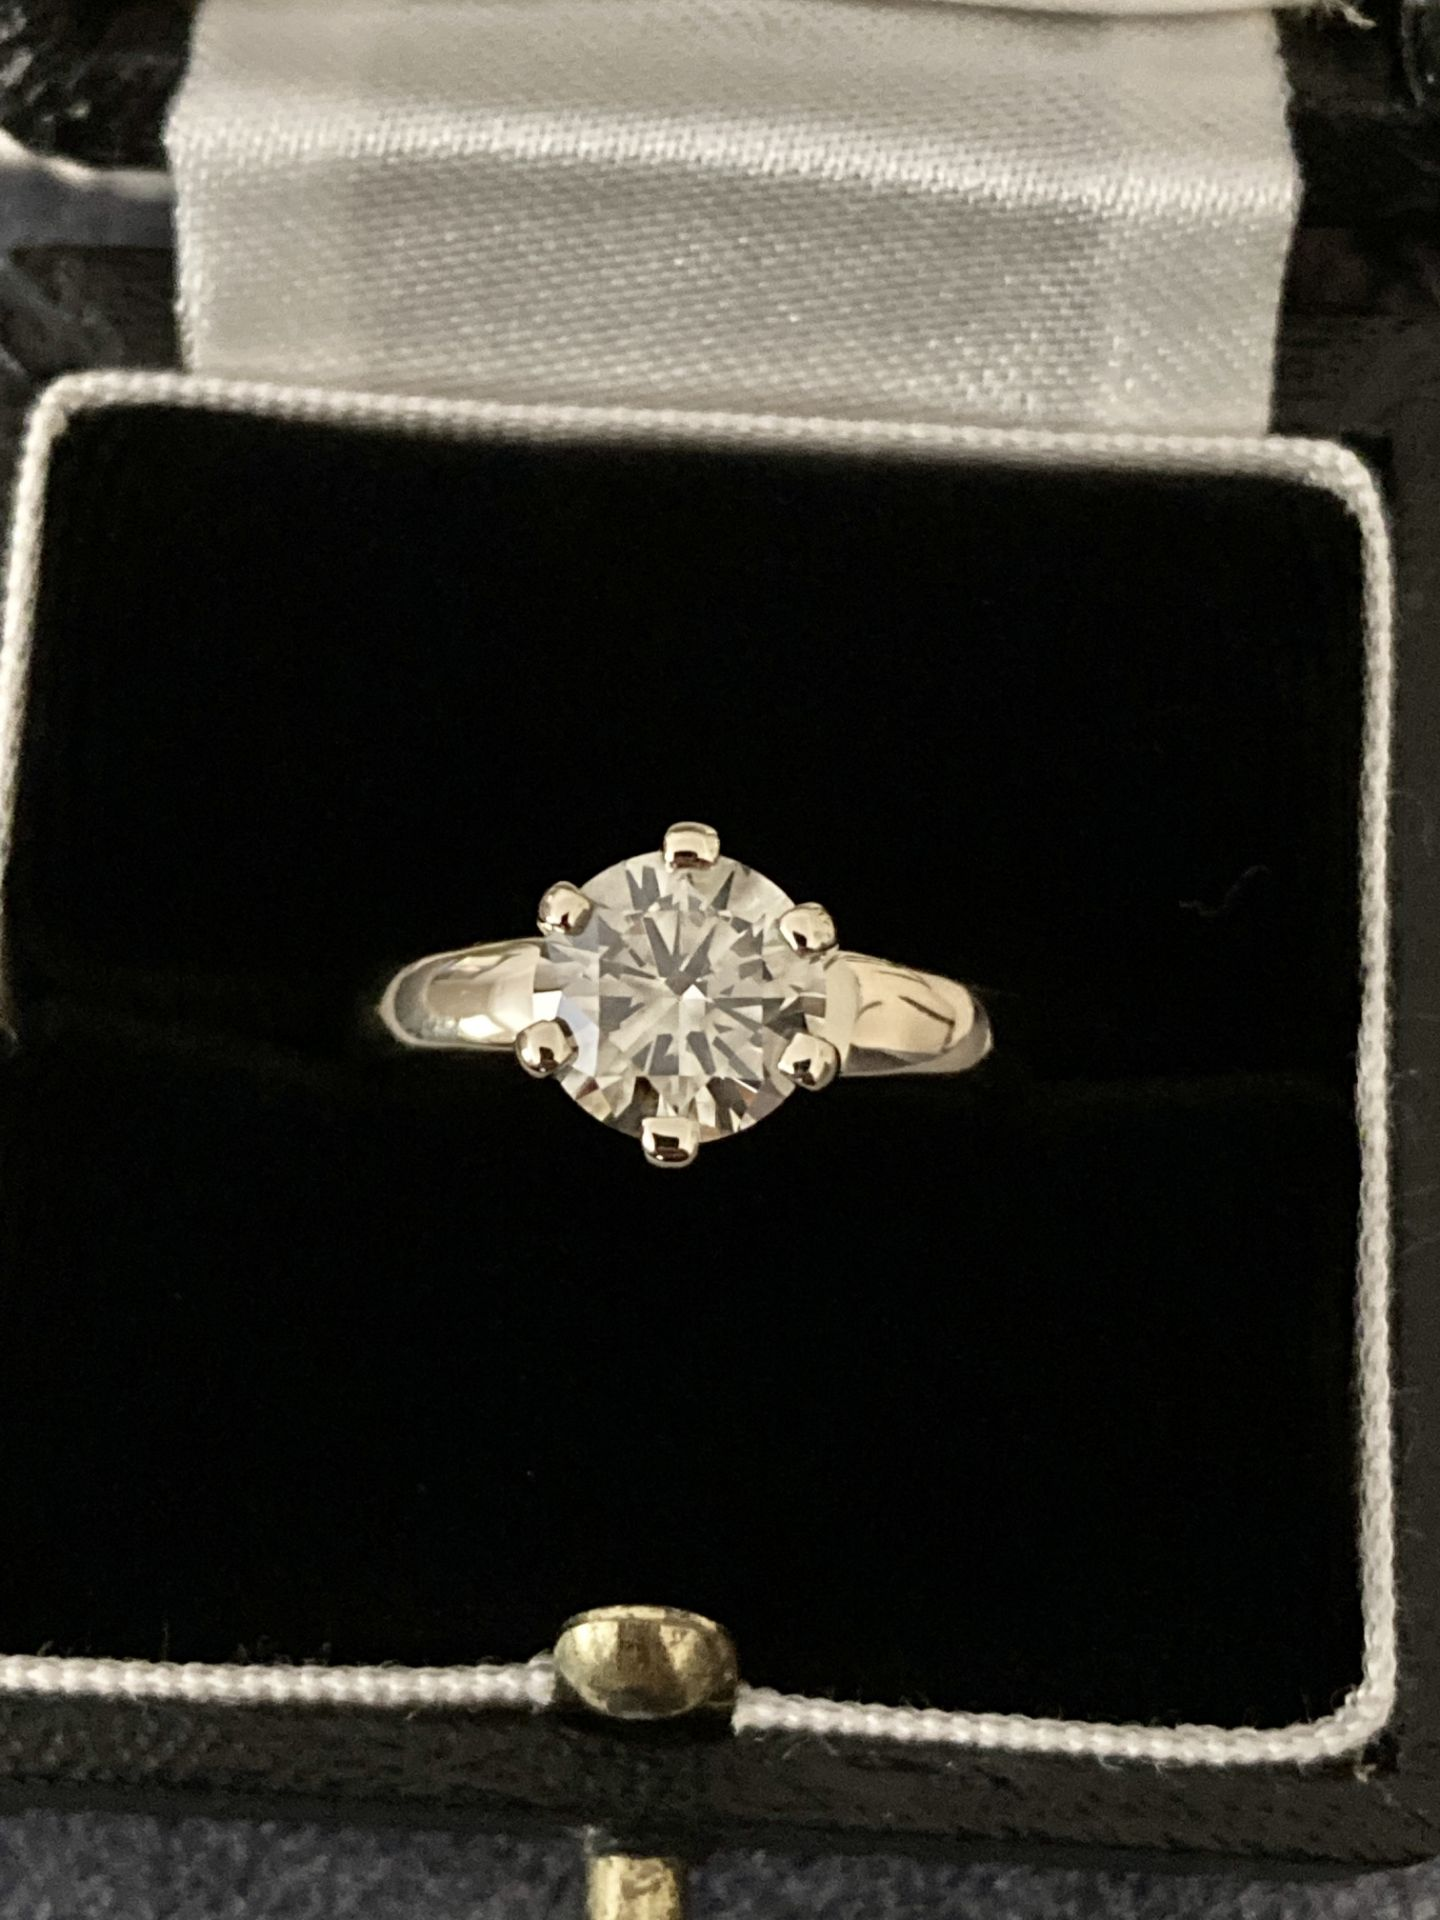 1.54CT DIAMOND SOLITAIRE RING Y. GOLD (ROUND BRILLIANT) - 2012 VALUATION £6,200 INCLUDED - Image 5 of 14